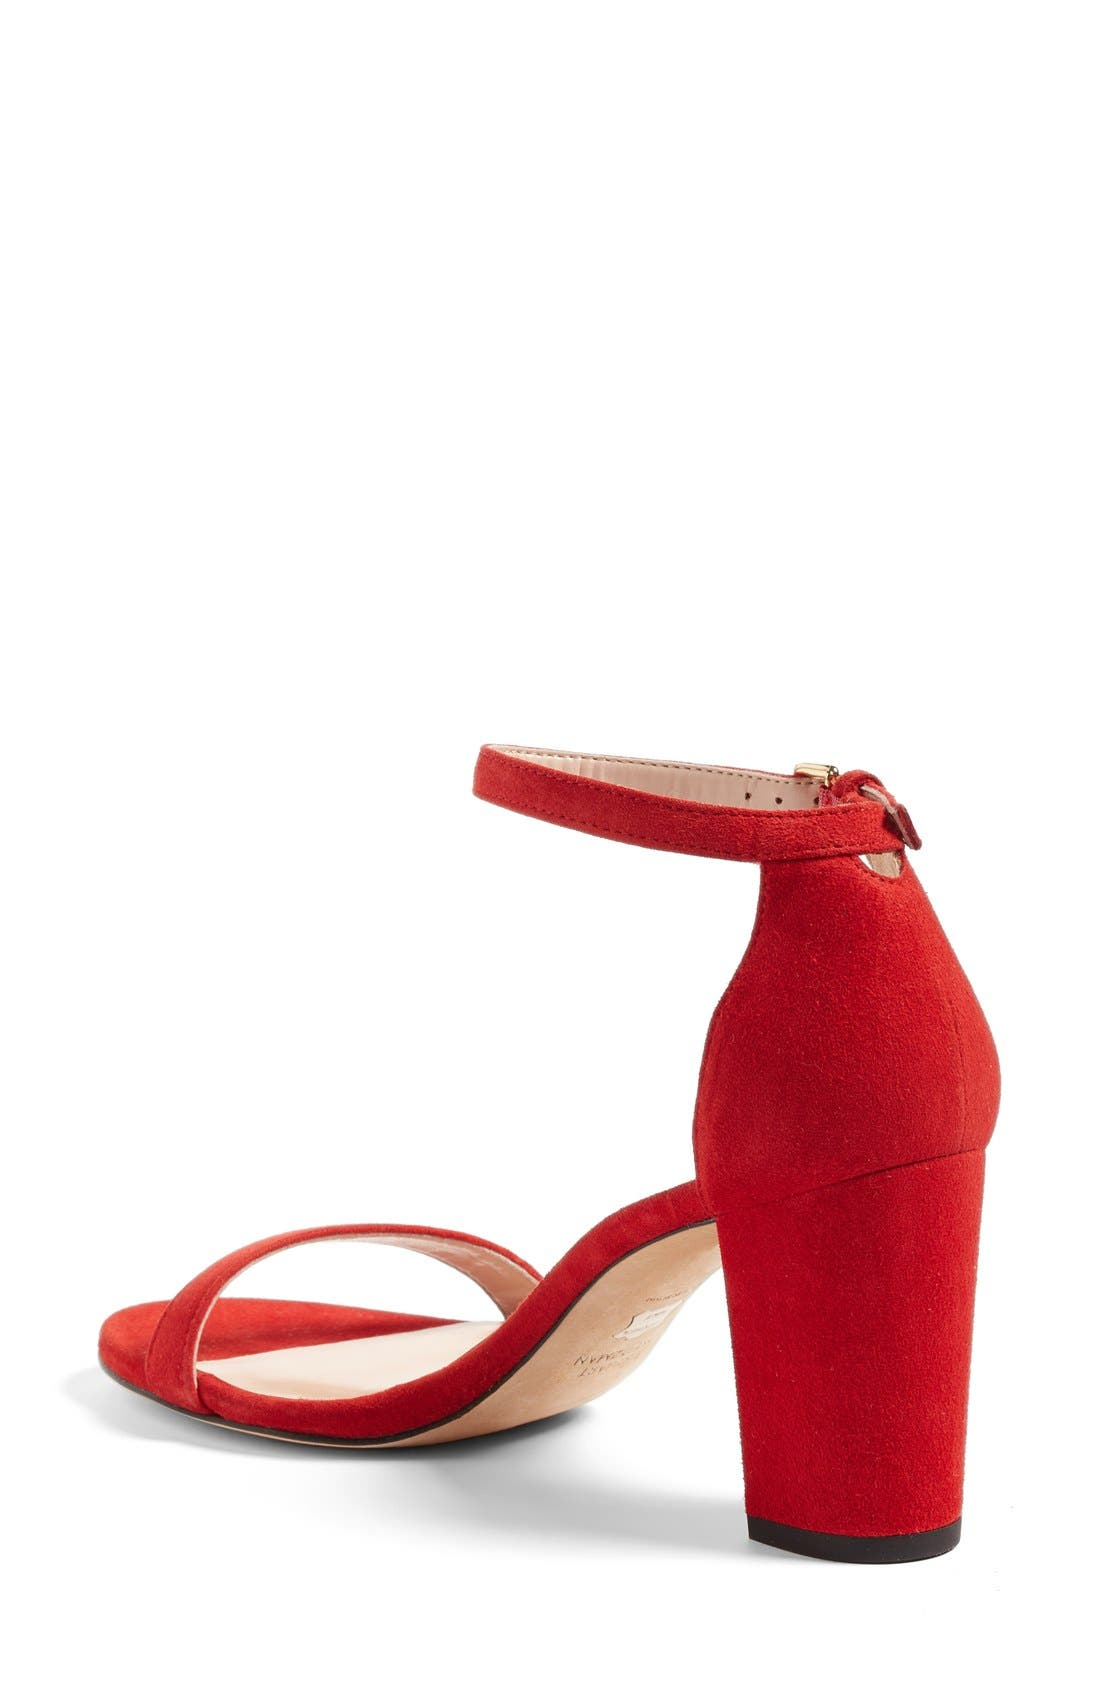 NearlyNude Ankle Strap Sandal,                             Alternate thumbnail 185, color,